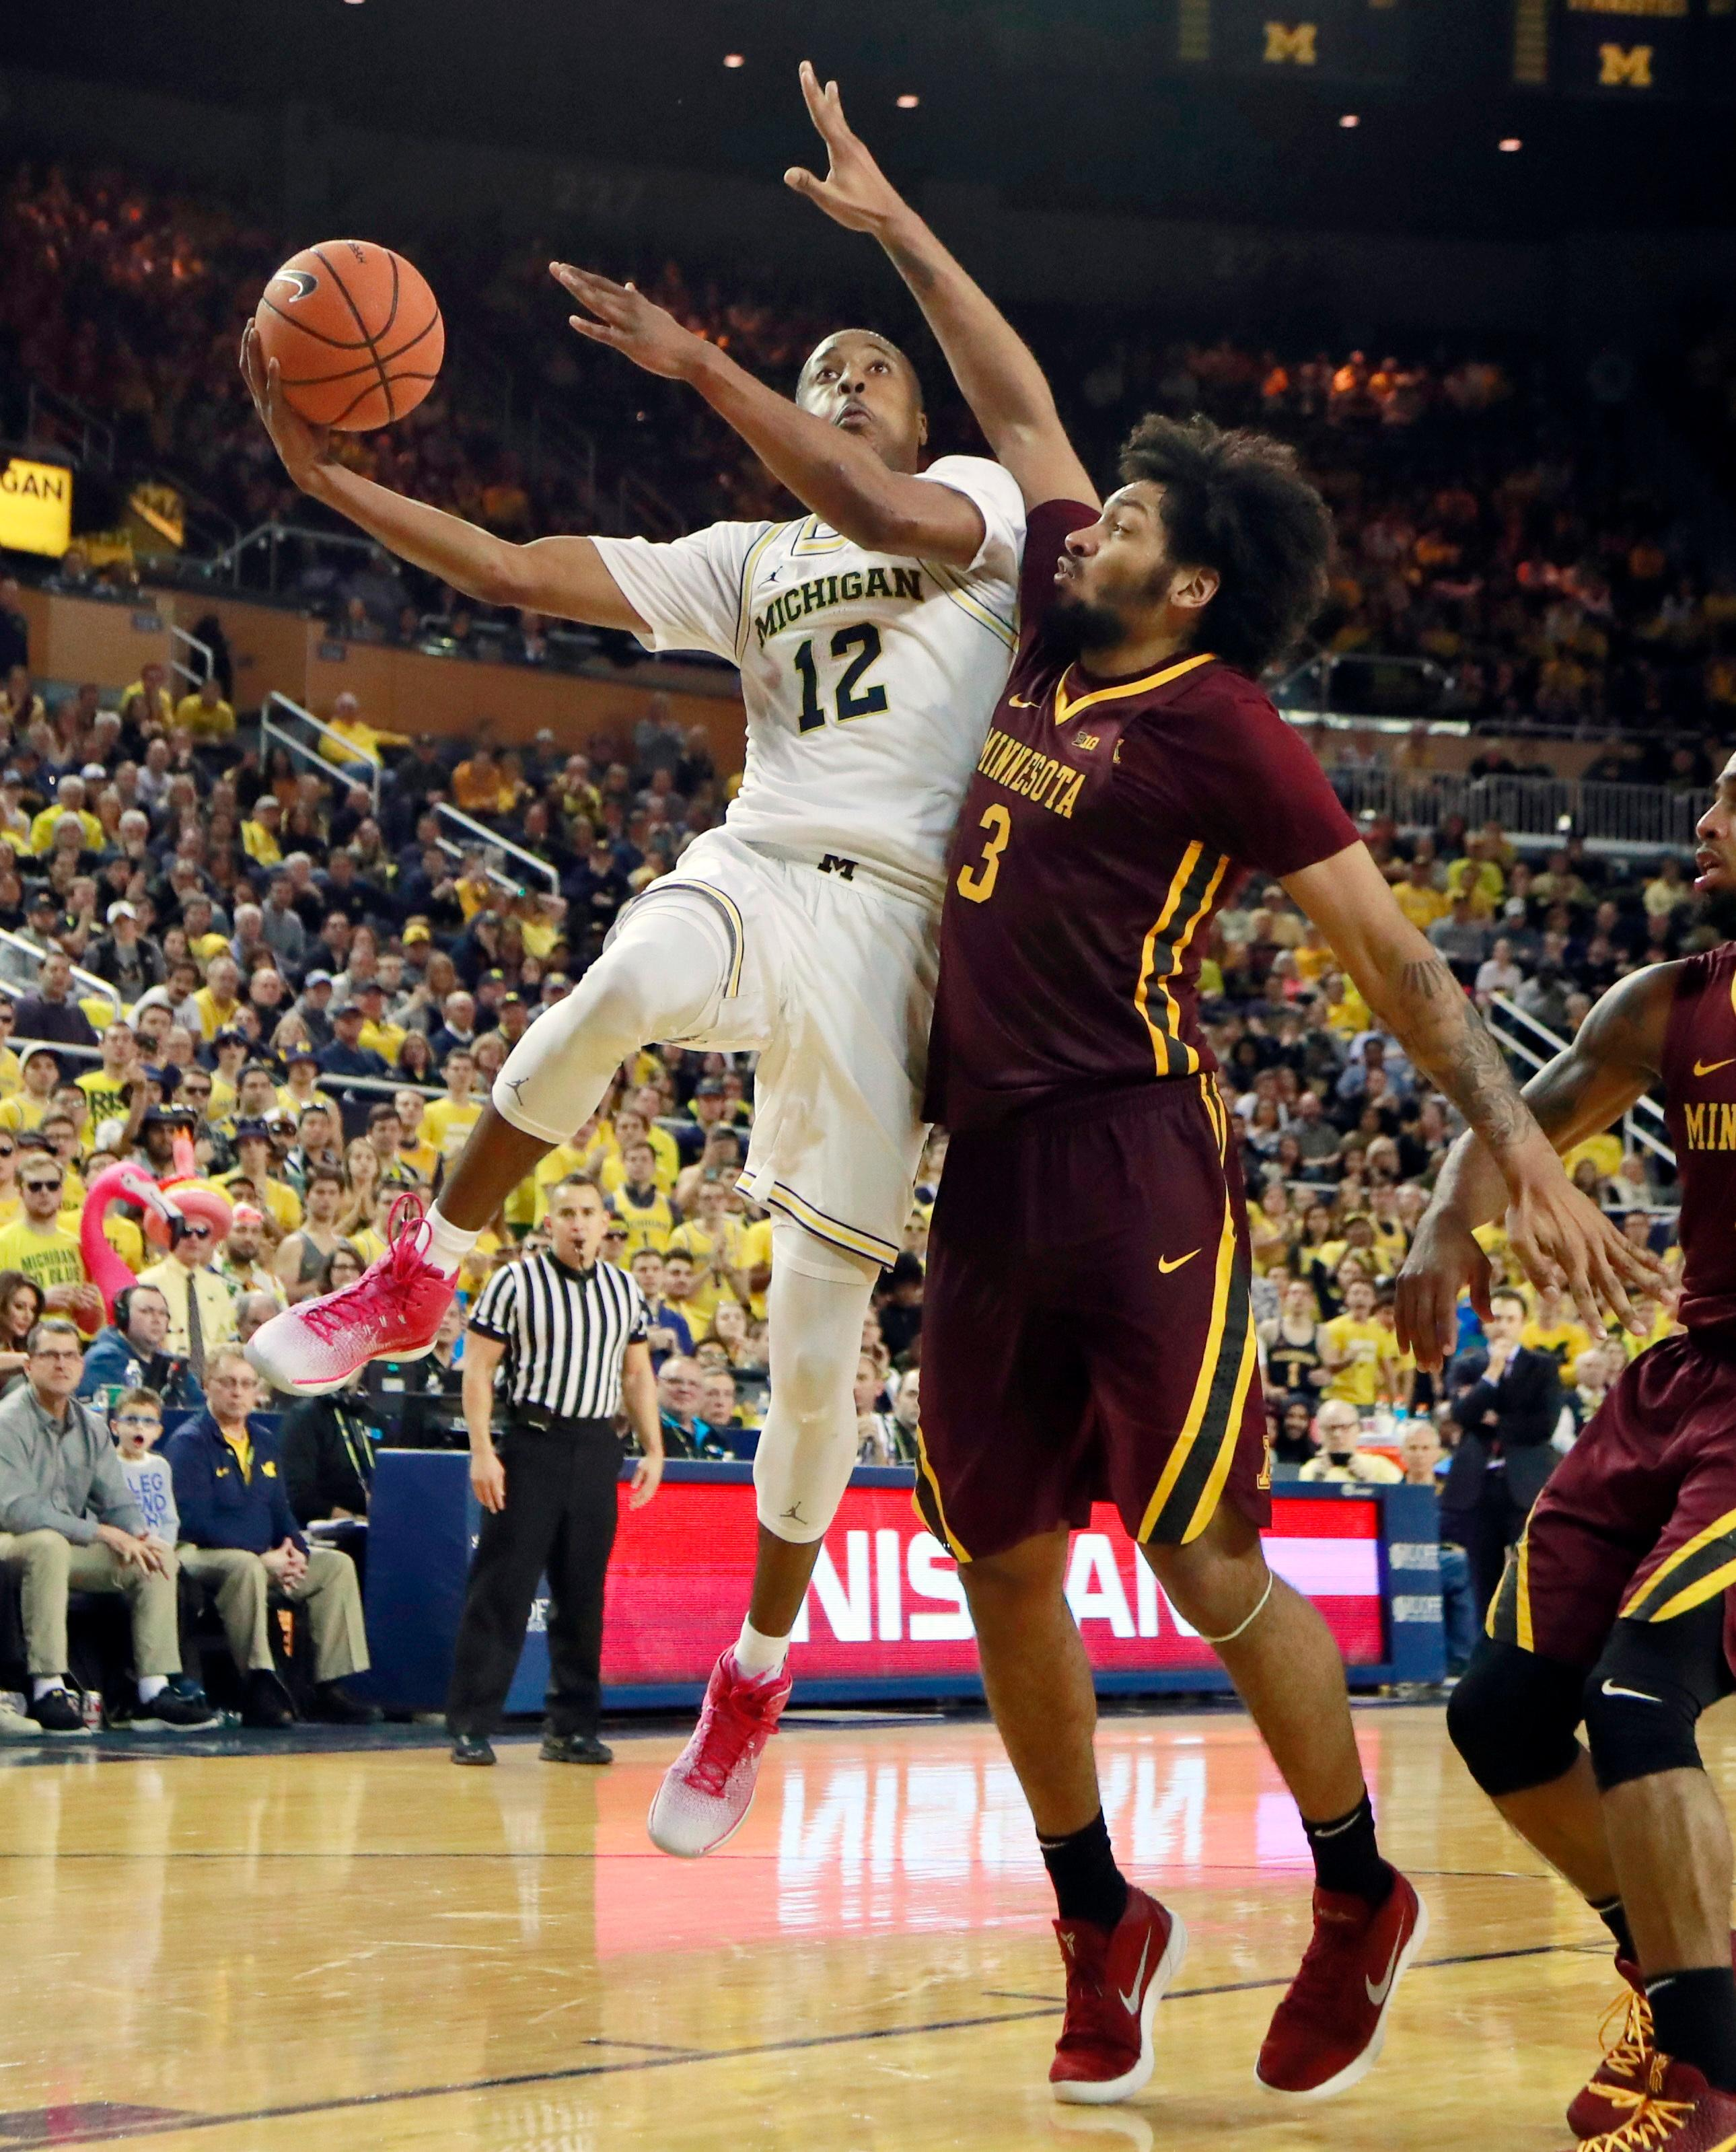 Michigan guard Muhammad-Ali Abdur-Rahkman (12) shoots as Minnesota forward Jordan Murphy (3) defends during the second half of an NCAA college basketball game, Saturday, Feb. 3, 2018, in Ann Arbor, Mich. (AP Photo/Carlos Osorio)